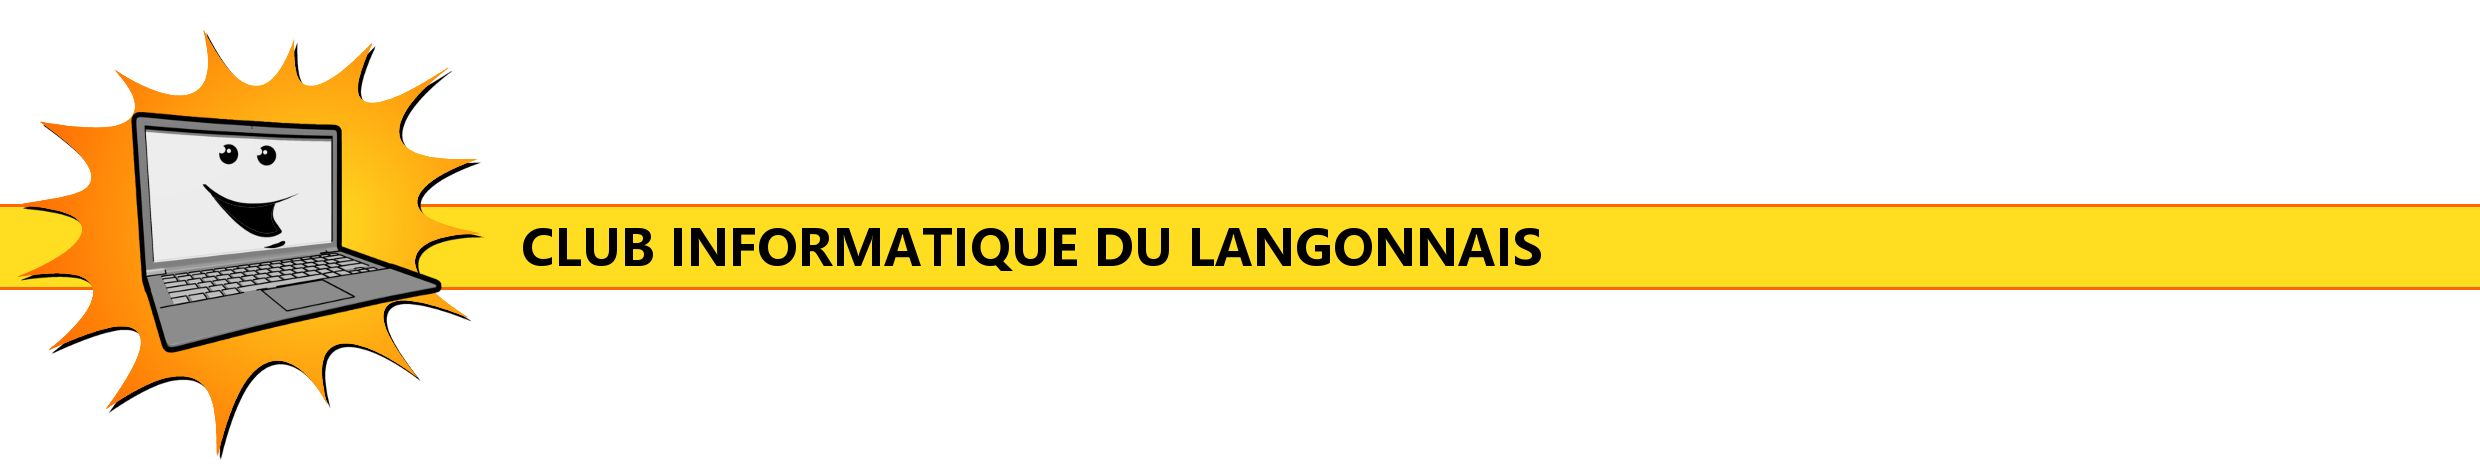 Club Informatique du Langonnais - CIL